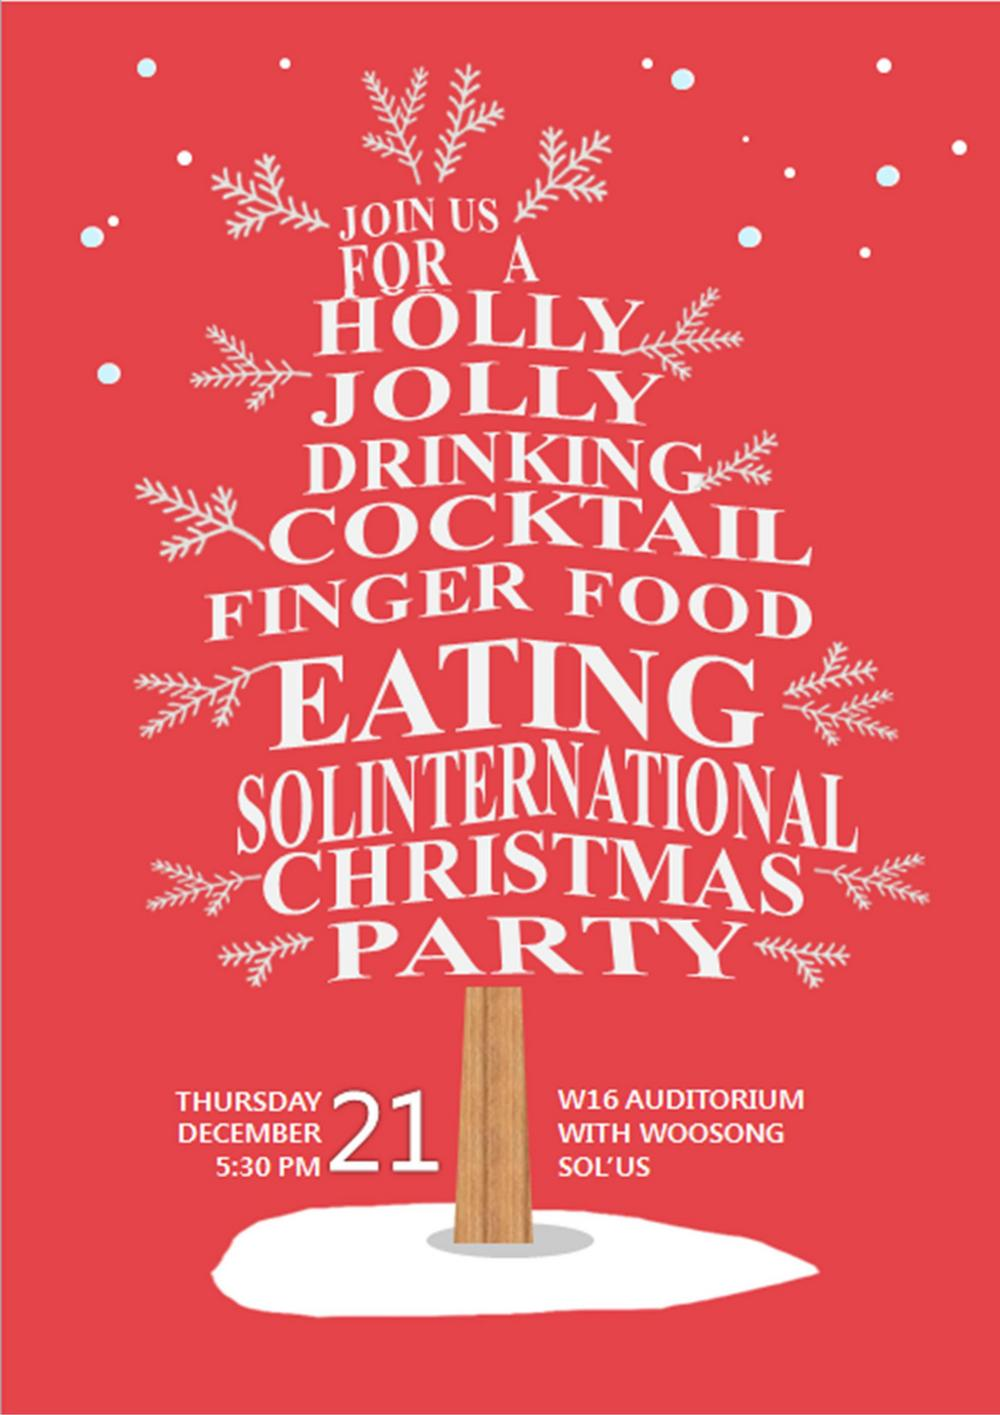 SIHOM Dept organizes Christmas Party on 21st December, Thursday - It wouldn't be Christmas Without You!!